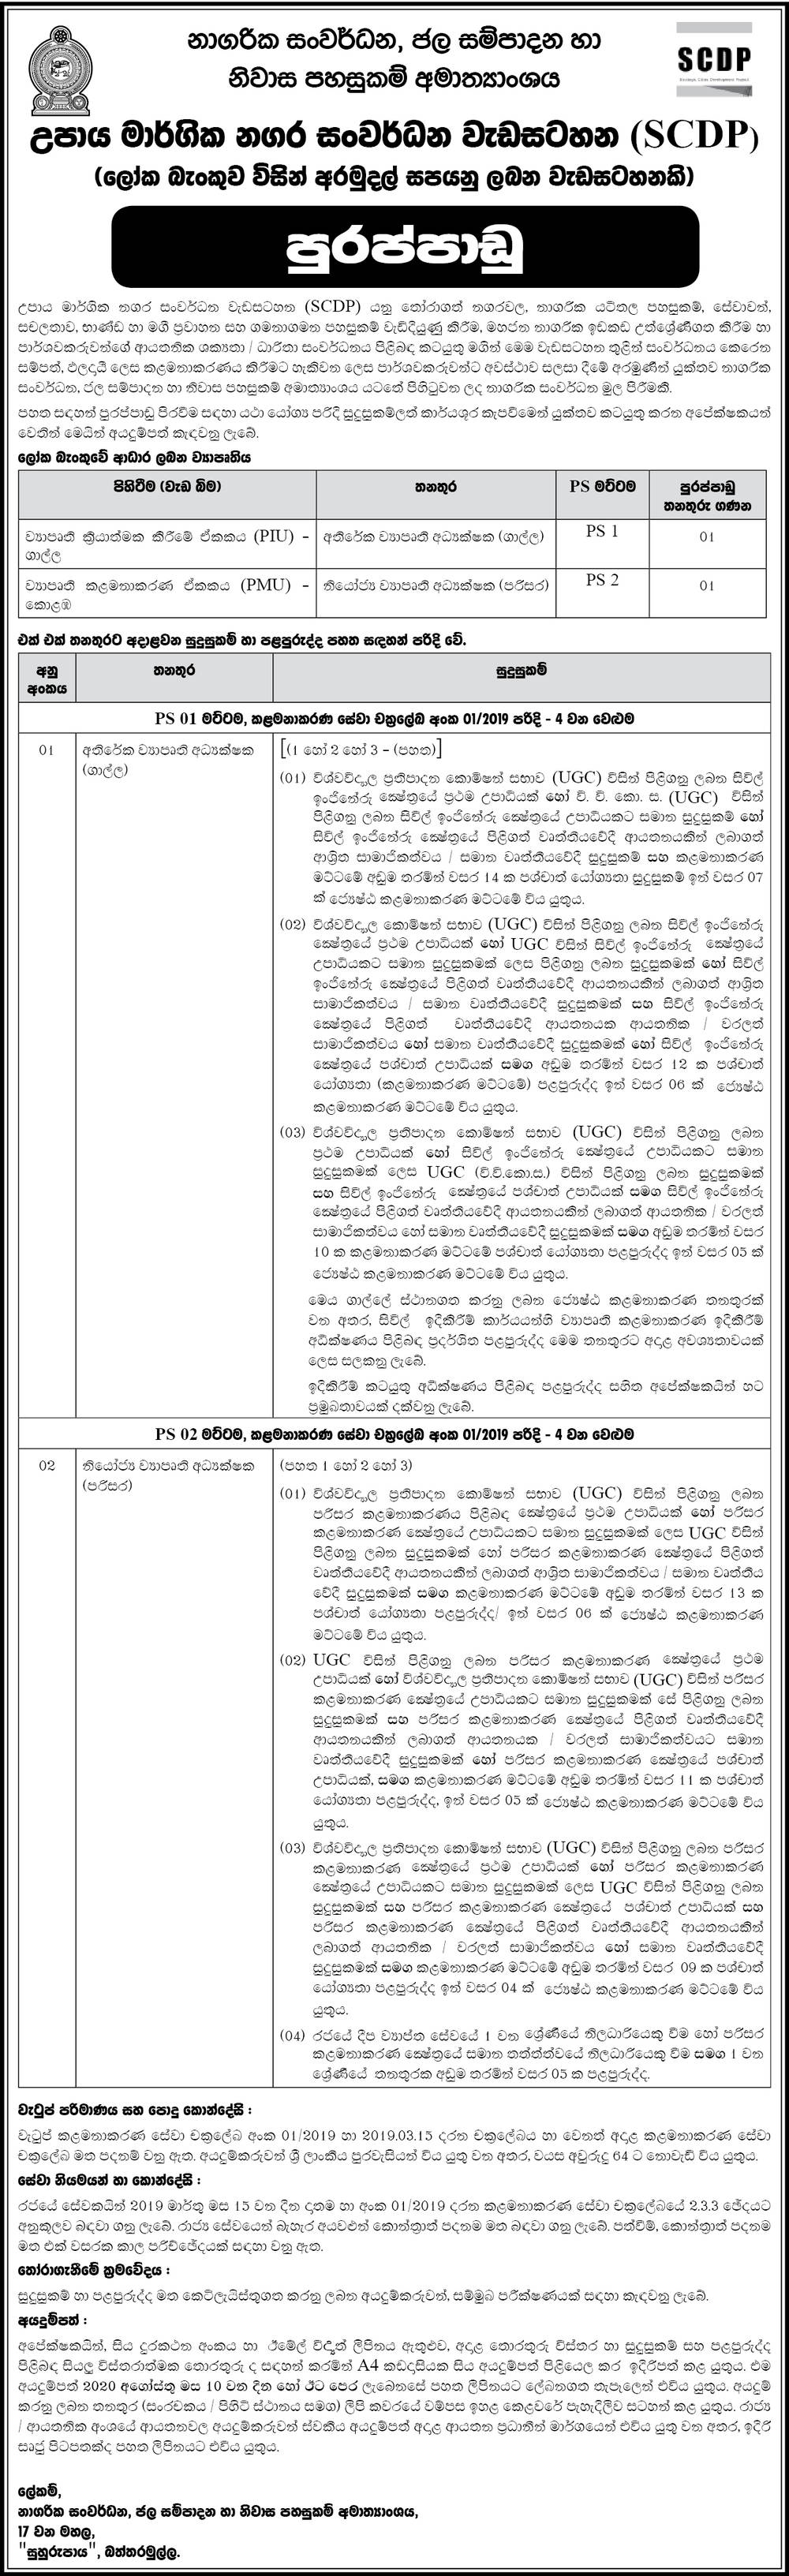 Additional Project Director, Deputy Project Director - Ministry of Urban Development, Water Supply & Housing Facilities